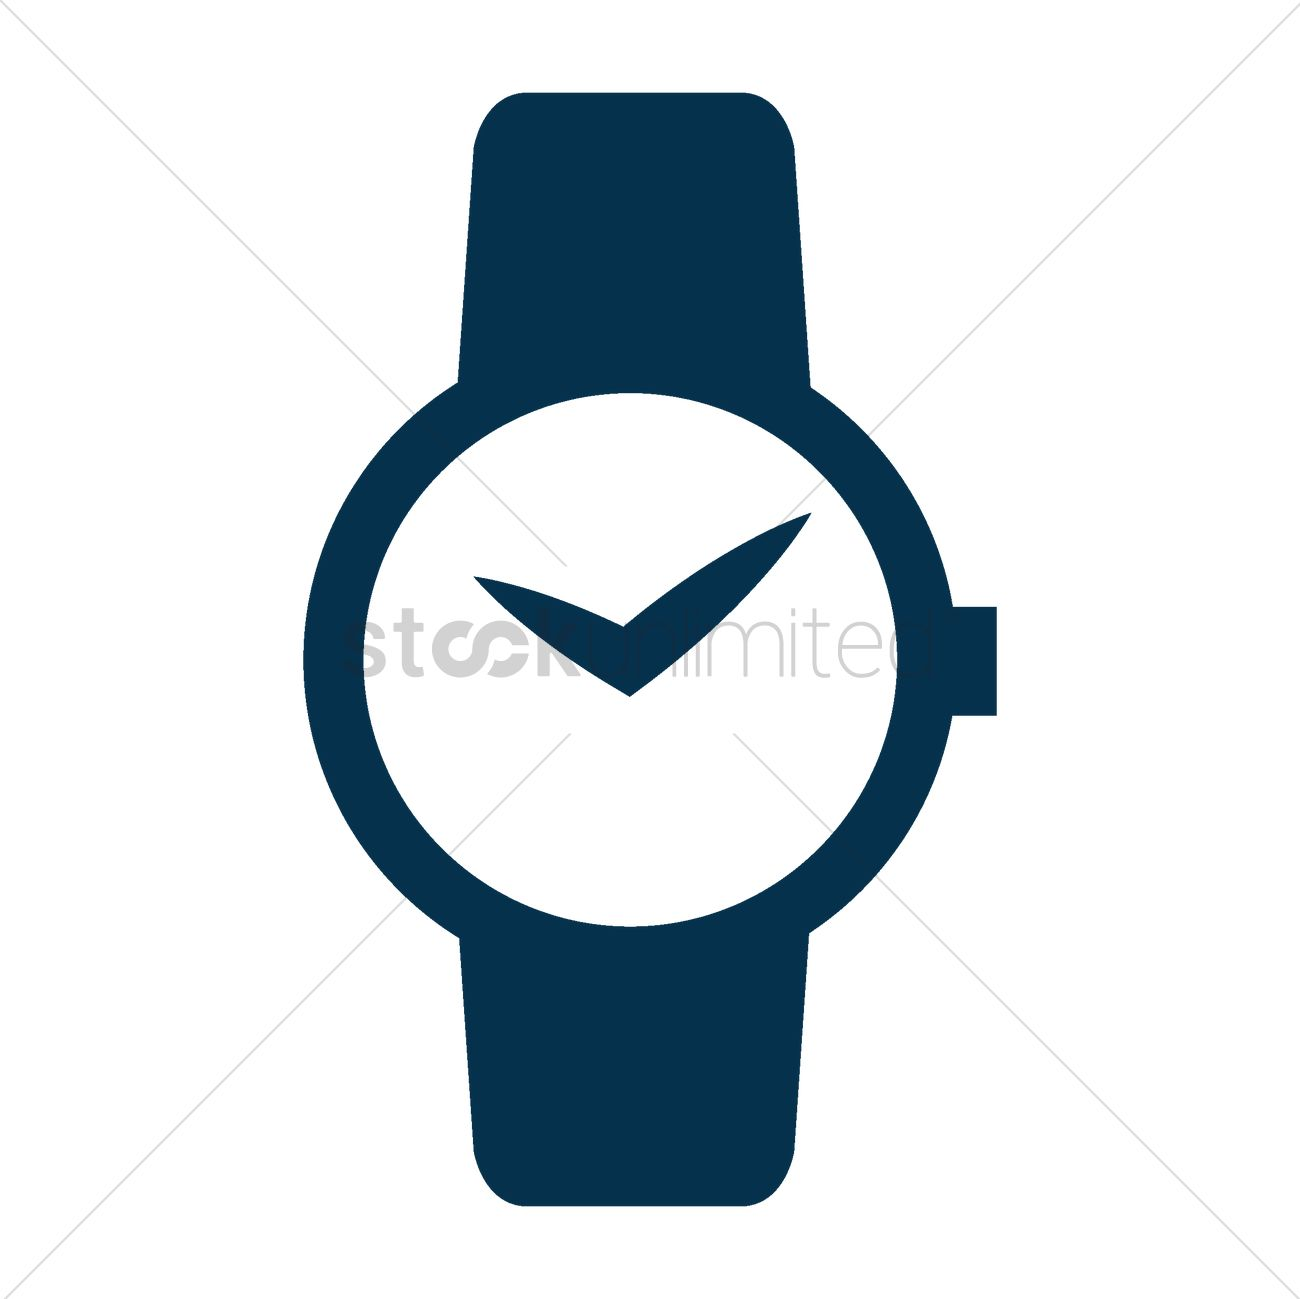 Wrist watch Vector Image.